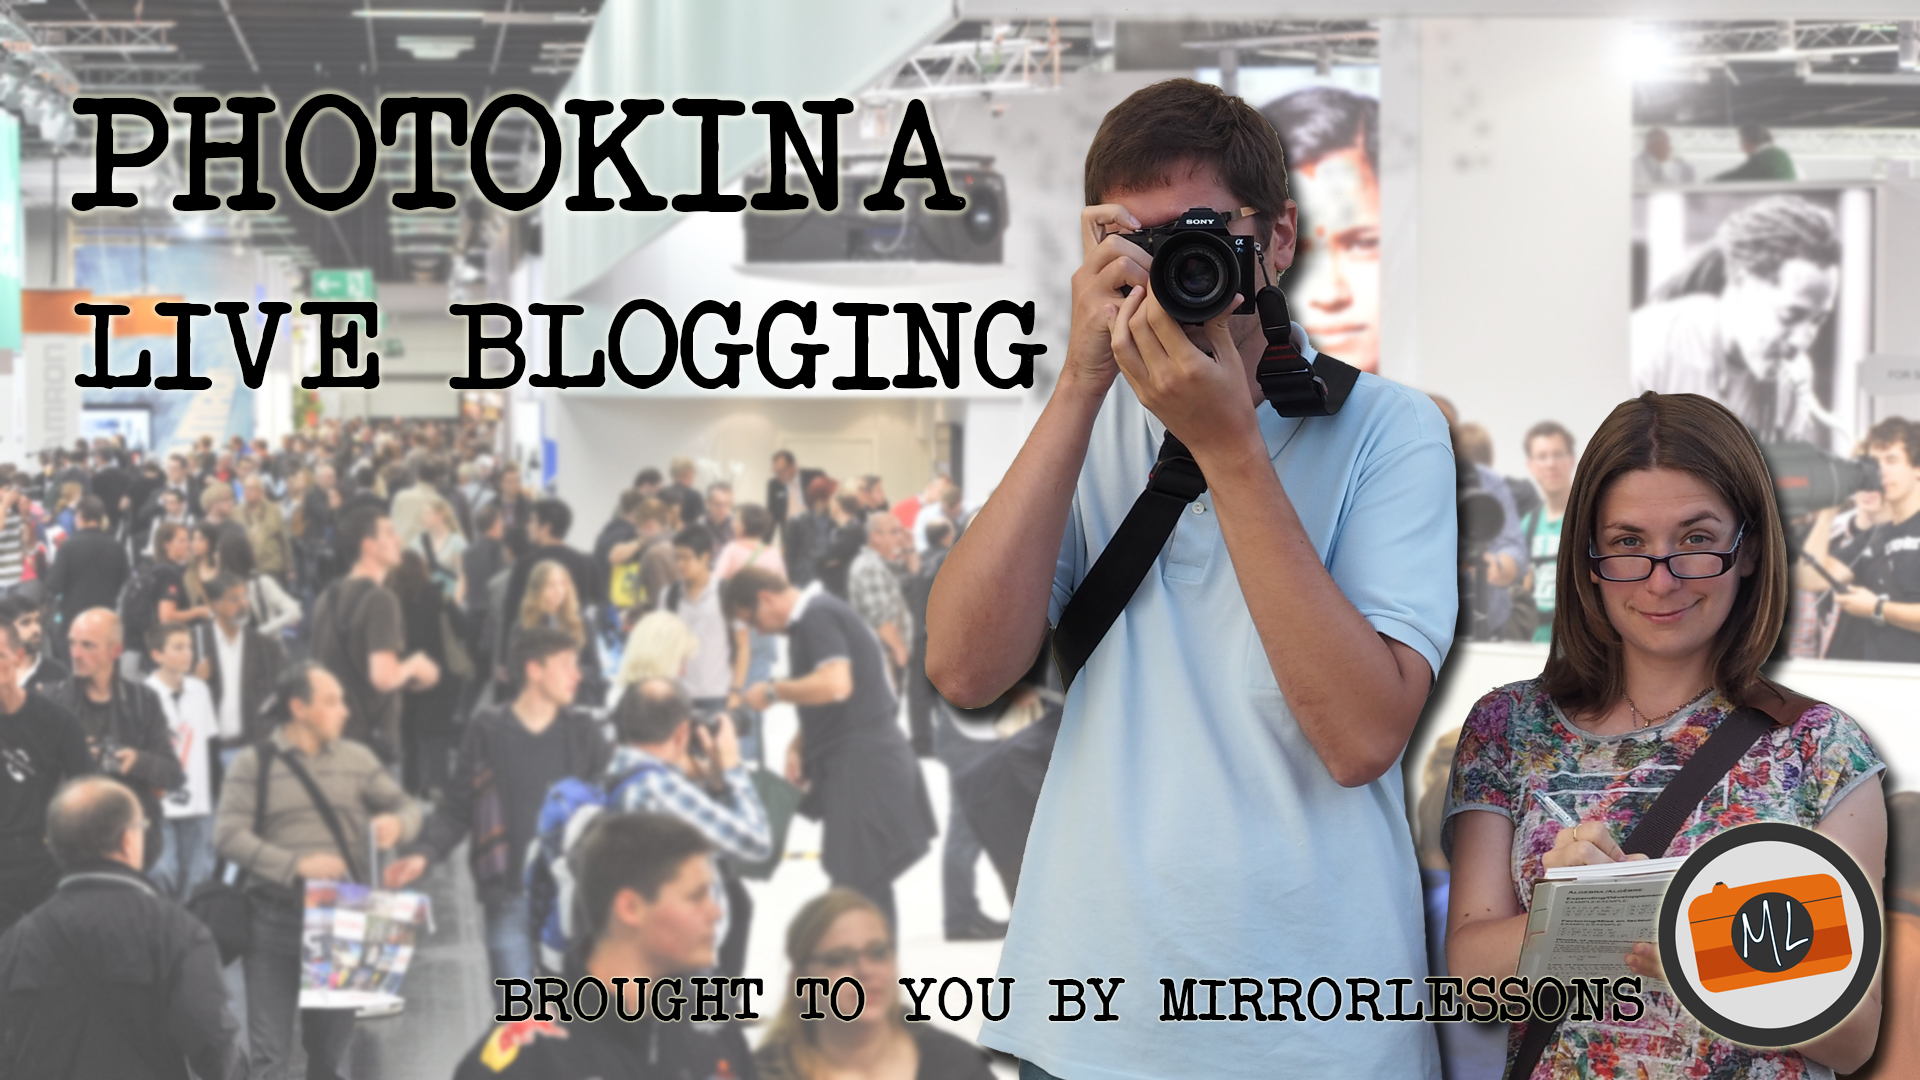 photokina-2014-live-blogging